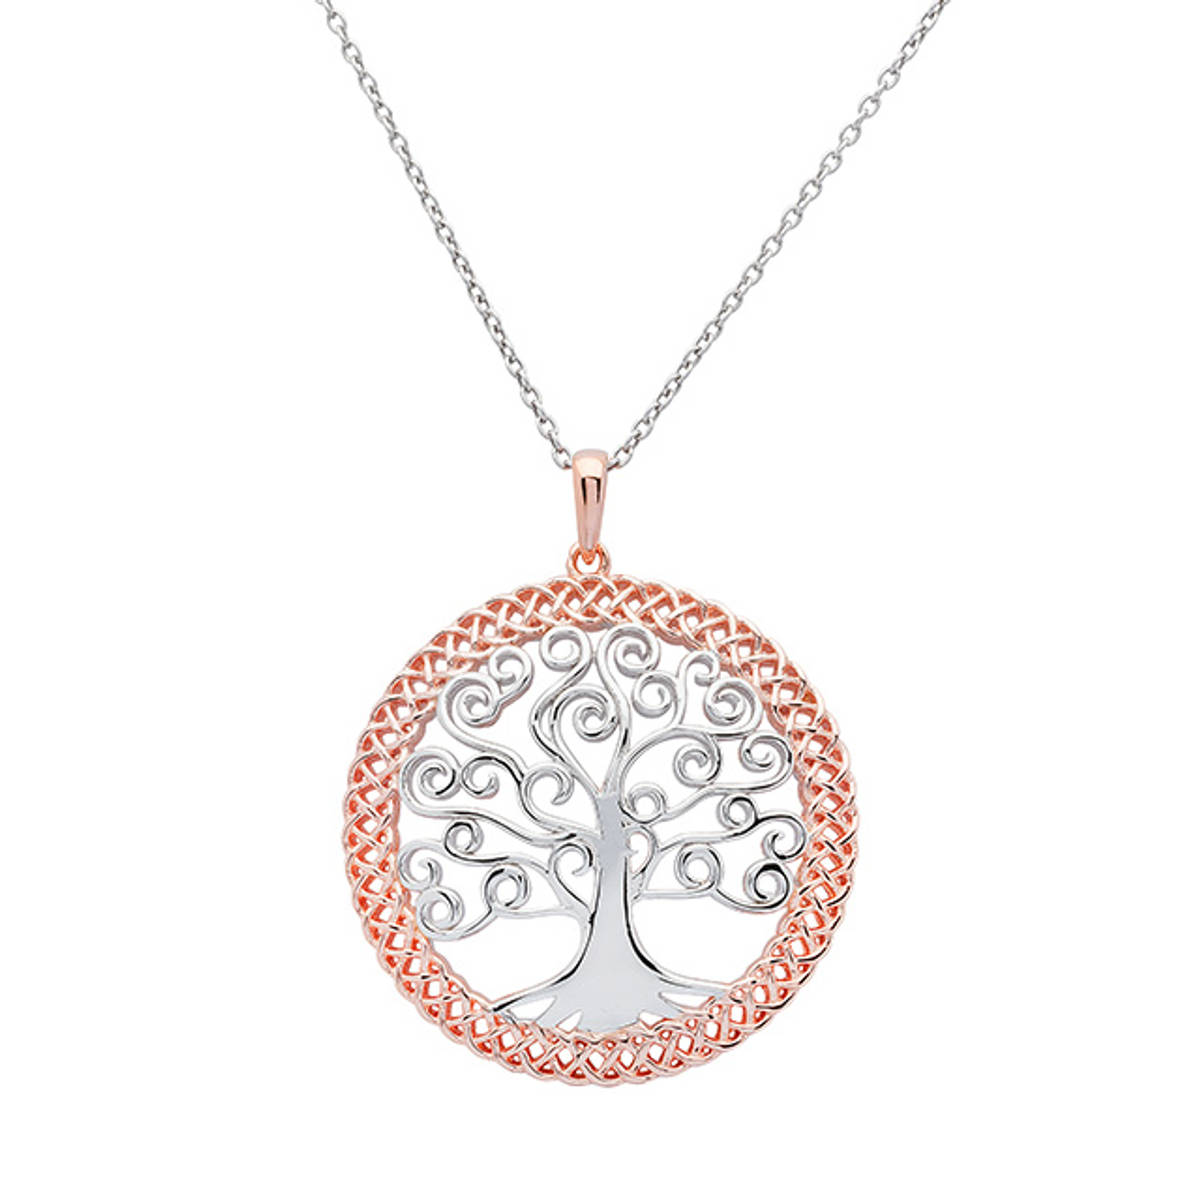 Sterling Silver Tree Of Life Pendant.   This pendant does NOT have the rose gold edge seen in the image.  Size: 30mm